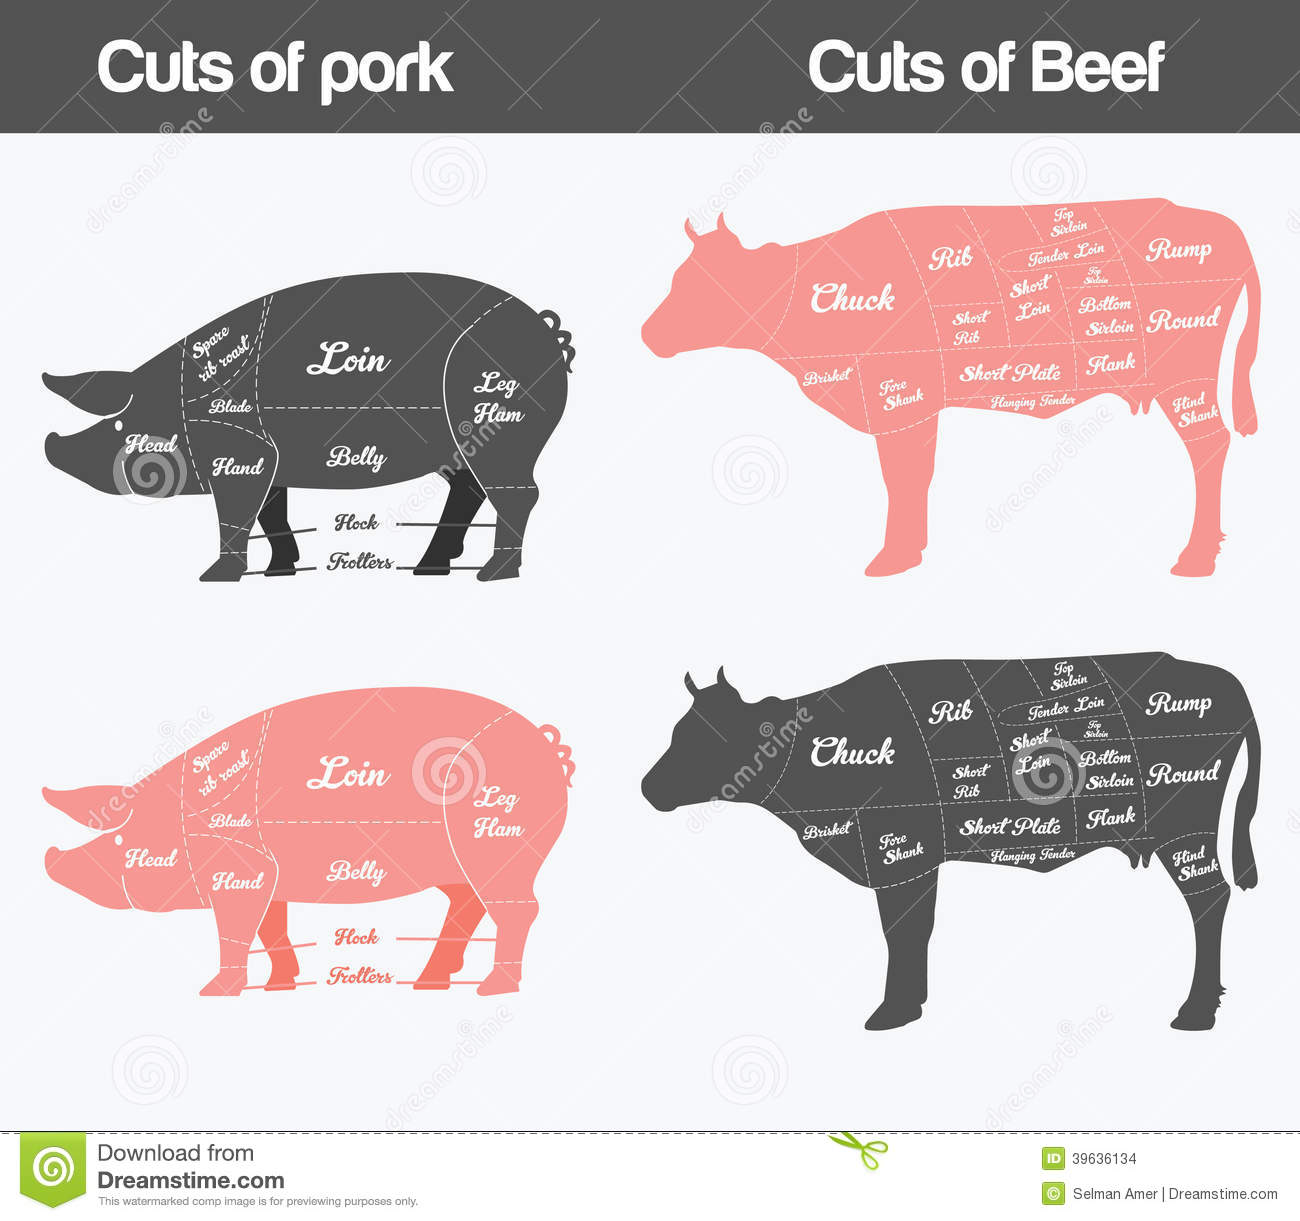 hight resolution of illustration of beef pork cuts chart stock vector illustration of cuts of pork american british meat diagrams stock vector